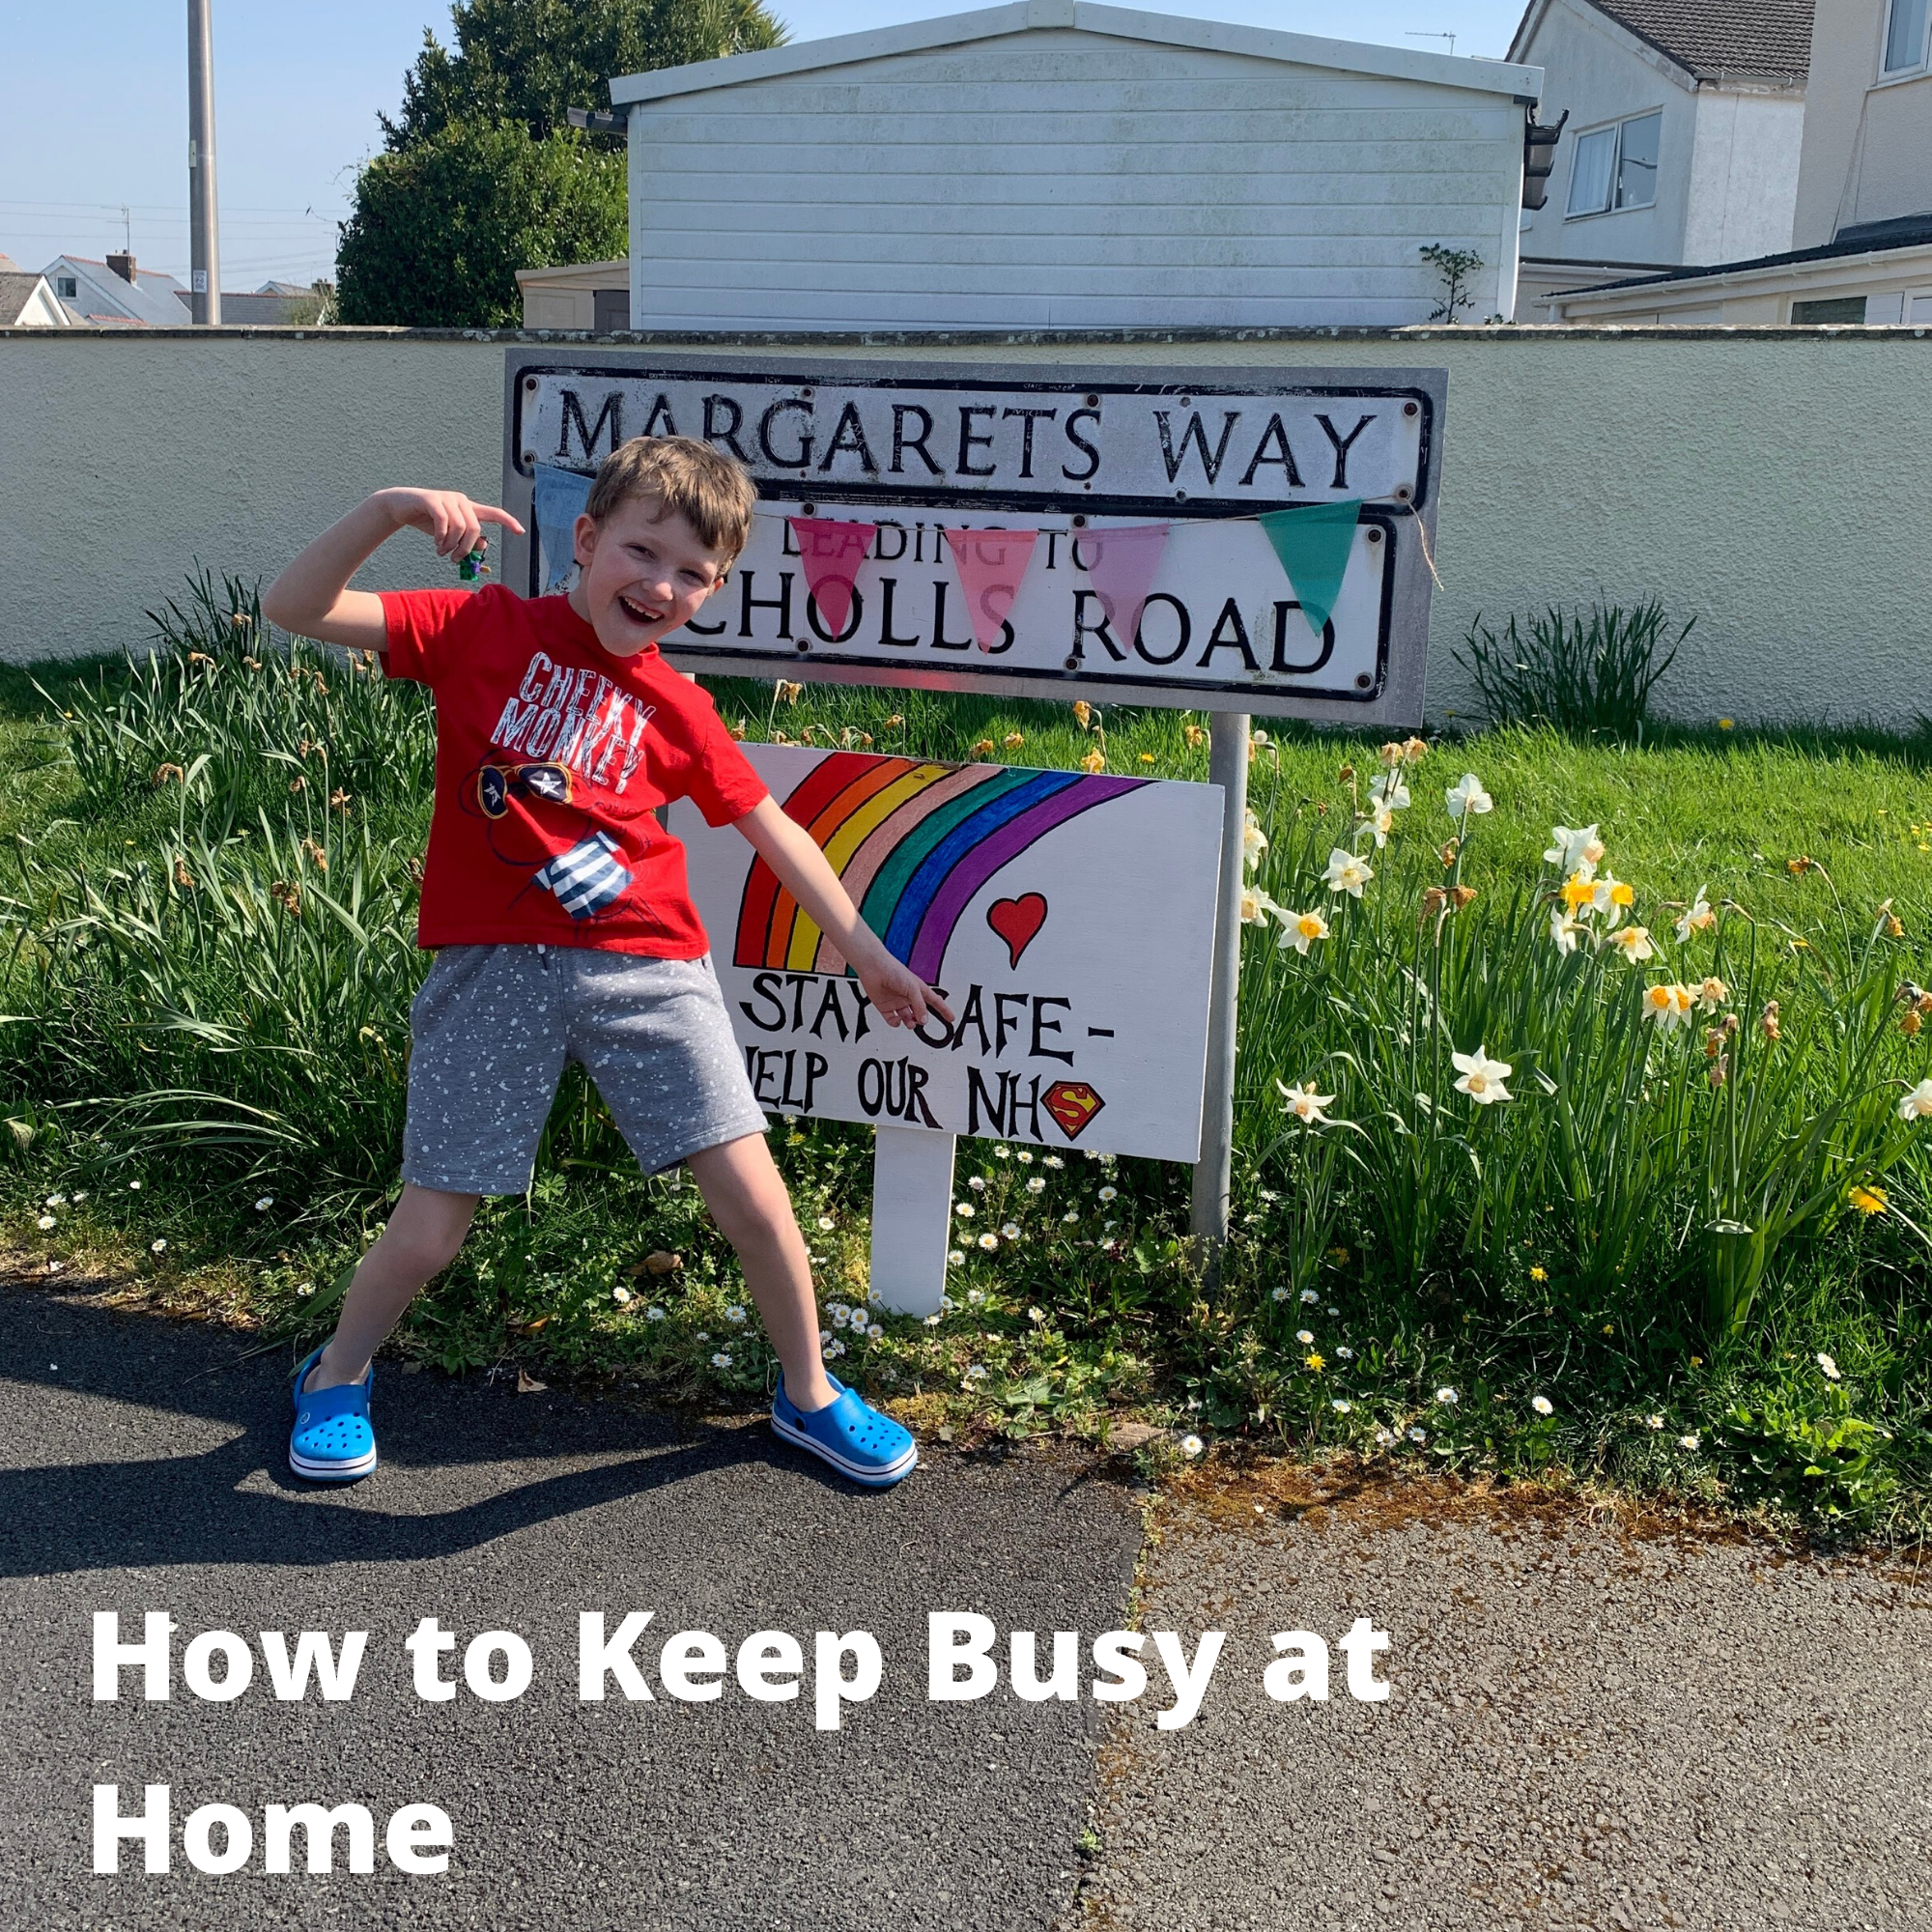 How to Keep Busy at Home